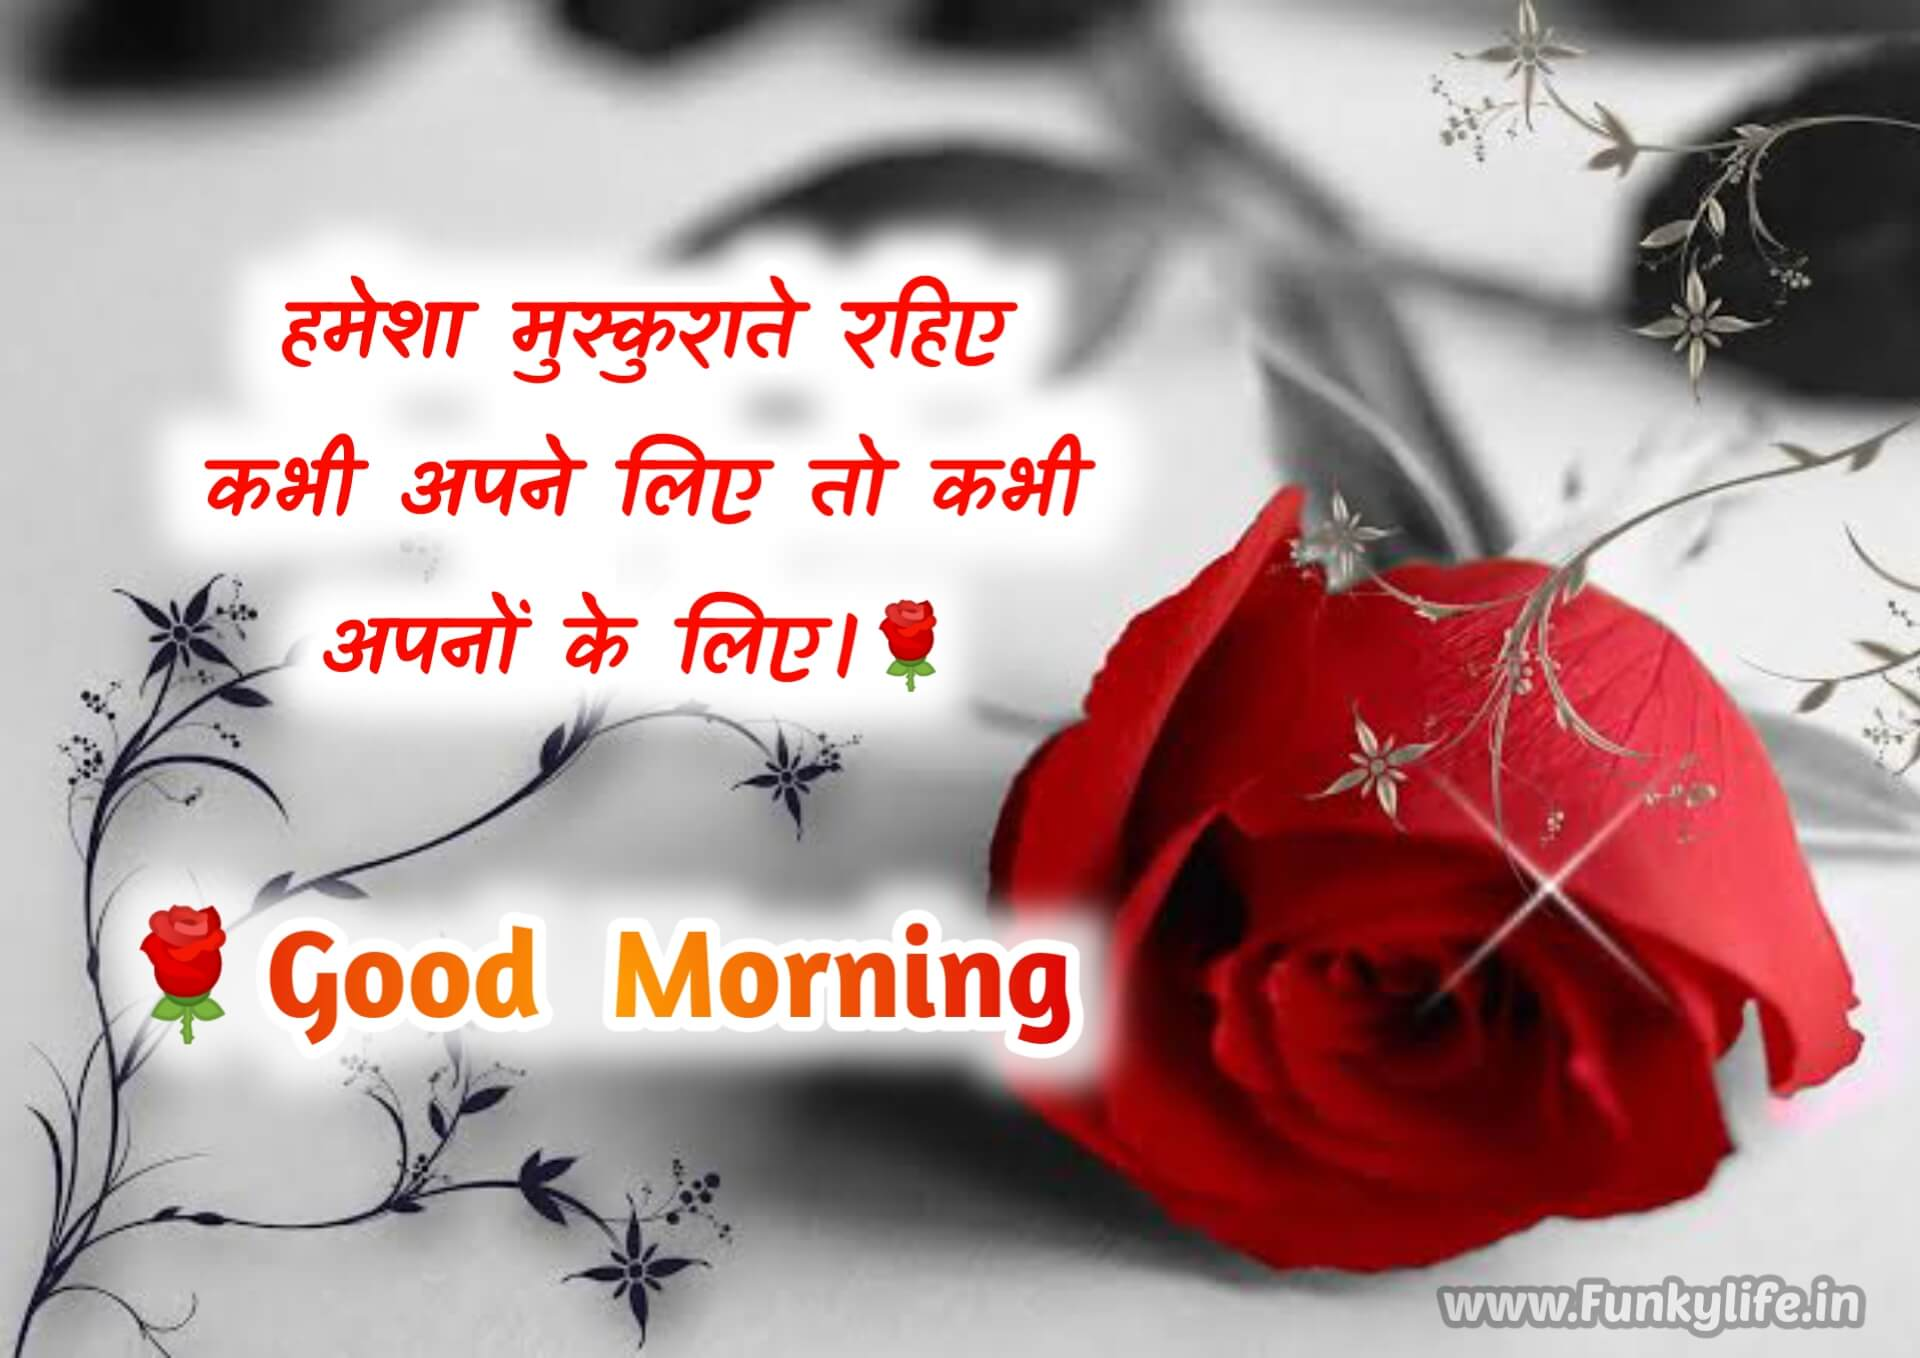 Good morning quotes In Hindi for family